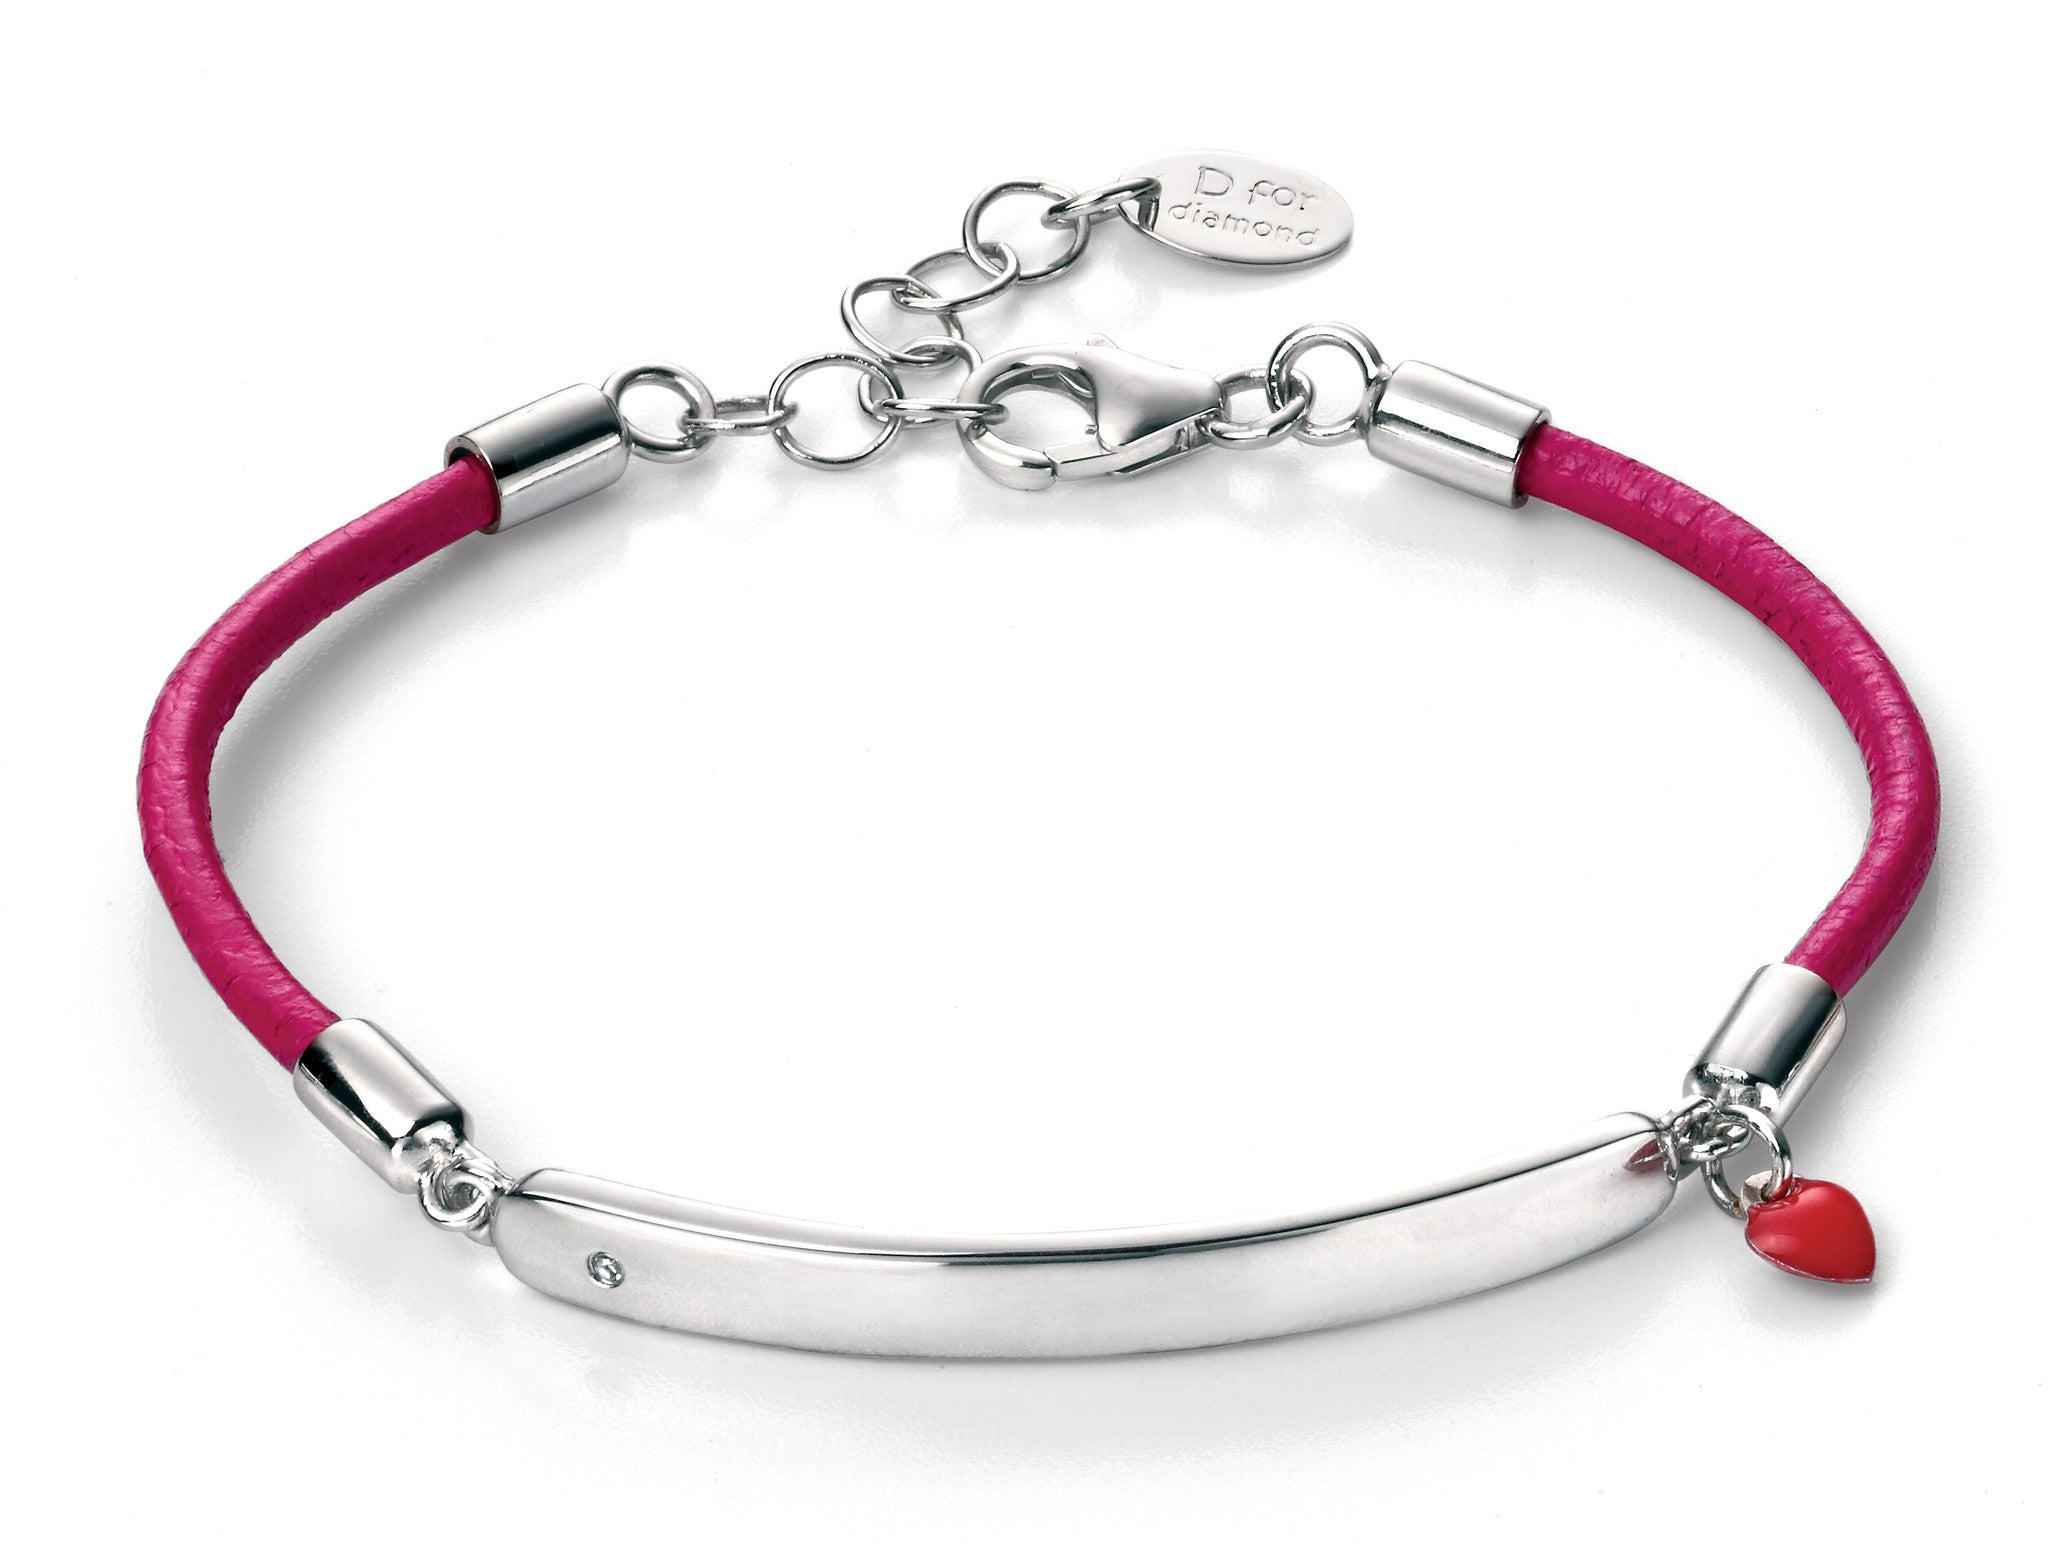 cafffa11f8495 Buy D for Diamond Pink Leather Girls Bracelet with ID Bar at Tzefira for  only £65.00